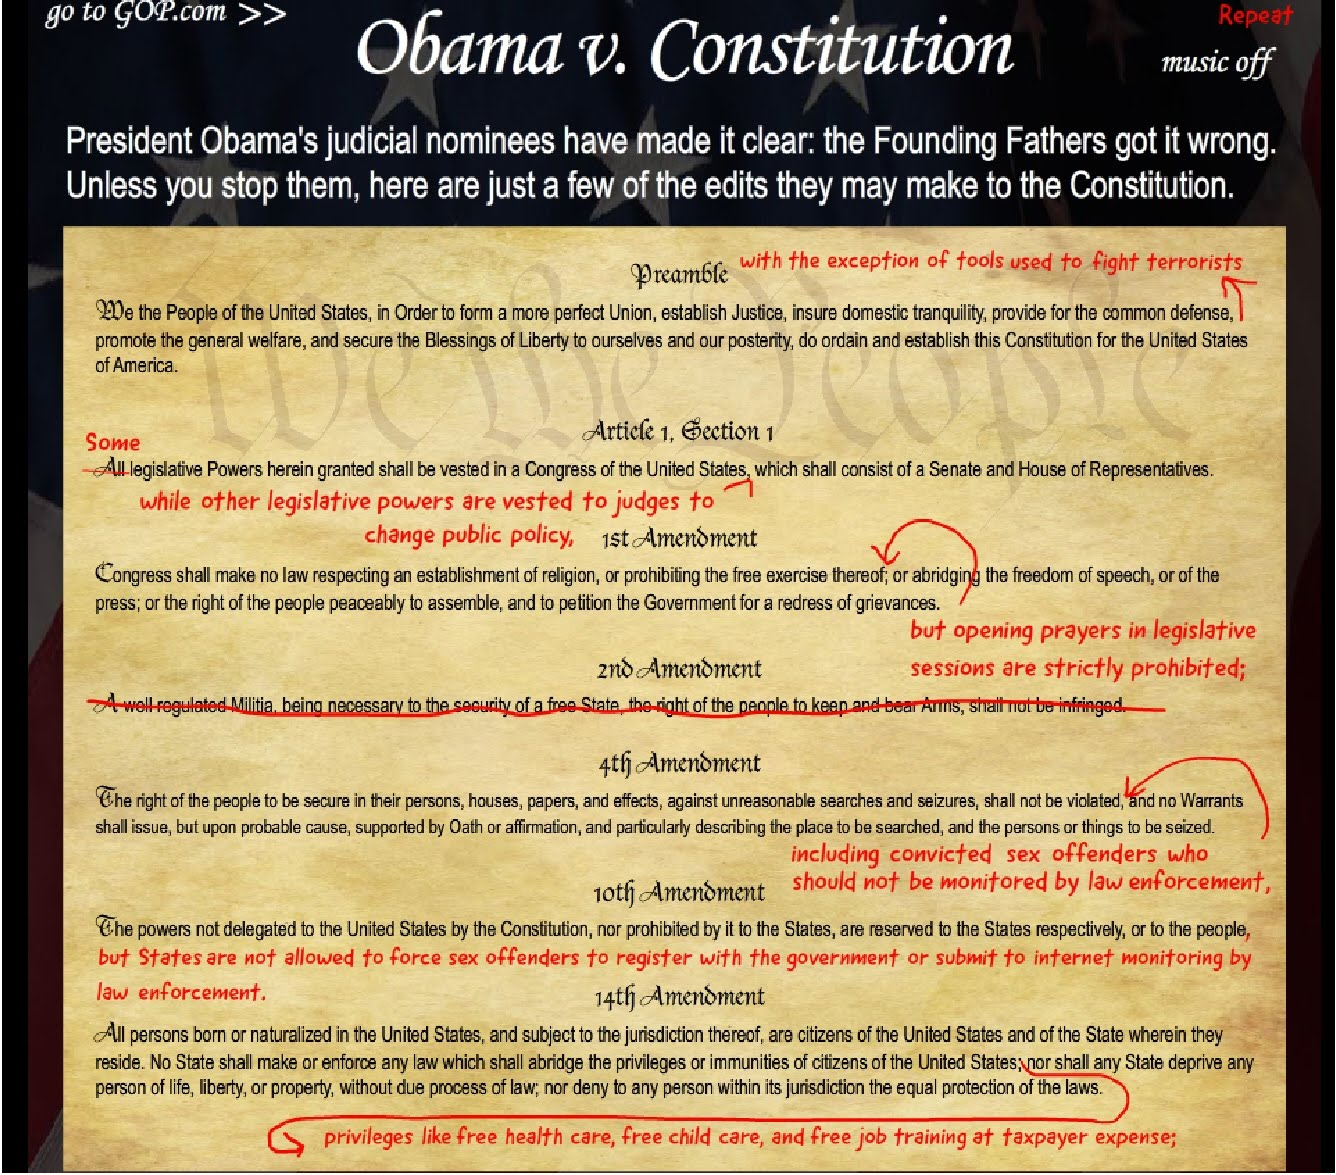 """obama thesis constitution Obama leaves the constitution weaker than at the beginning of his terms"""" epps labels obama's posture to be one of """"aggressive compliance,""""."""